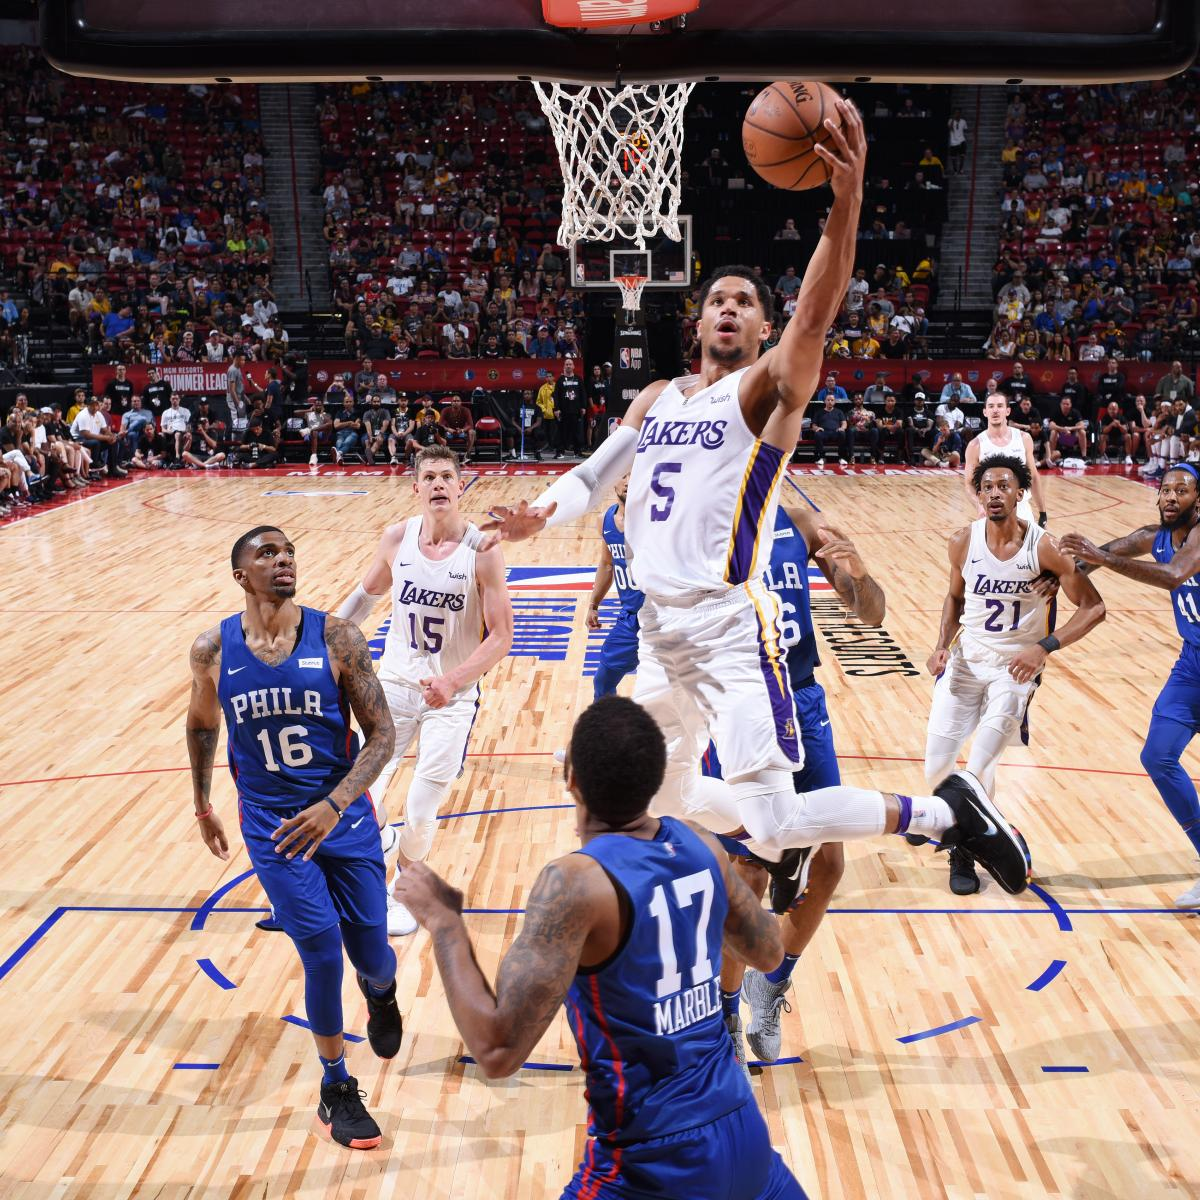 NBA Summer League 2018: Tuesday Schedule, Latest Las Vegas Standings and Stats